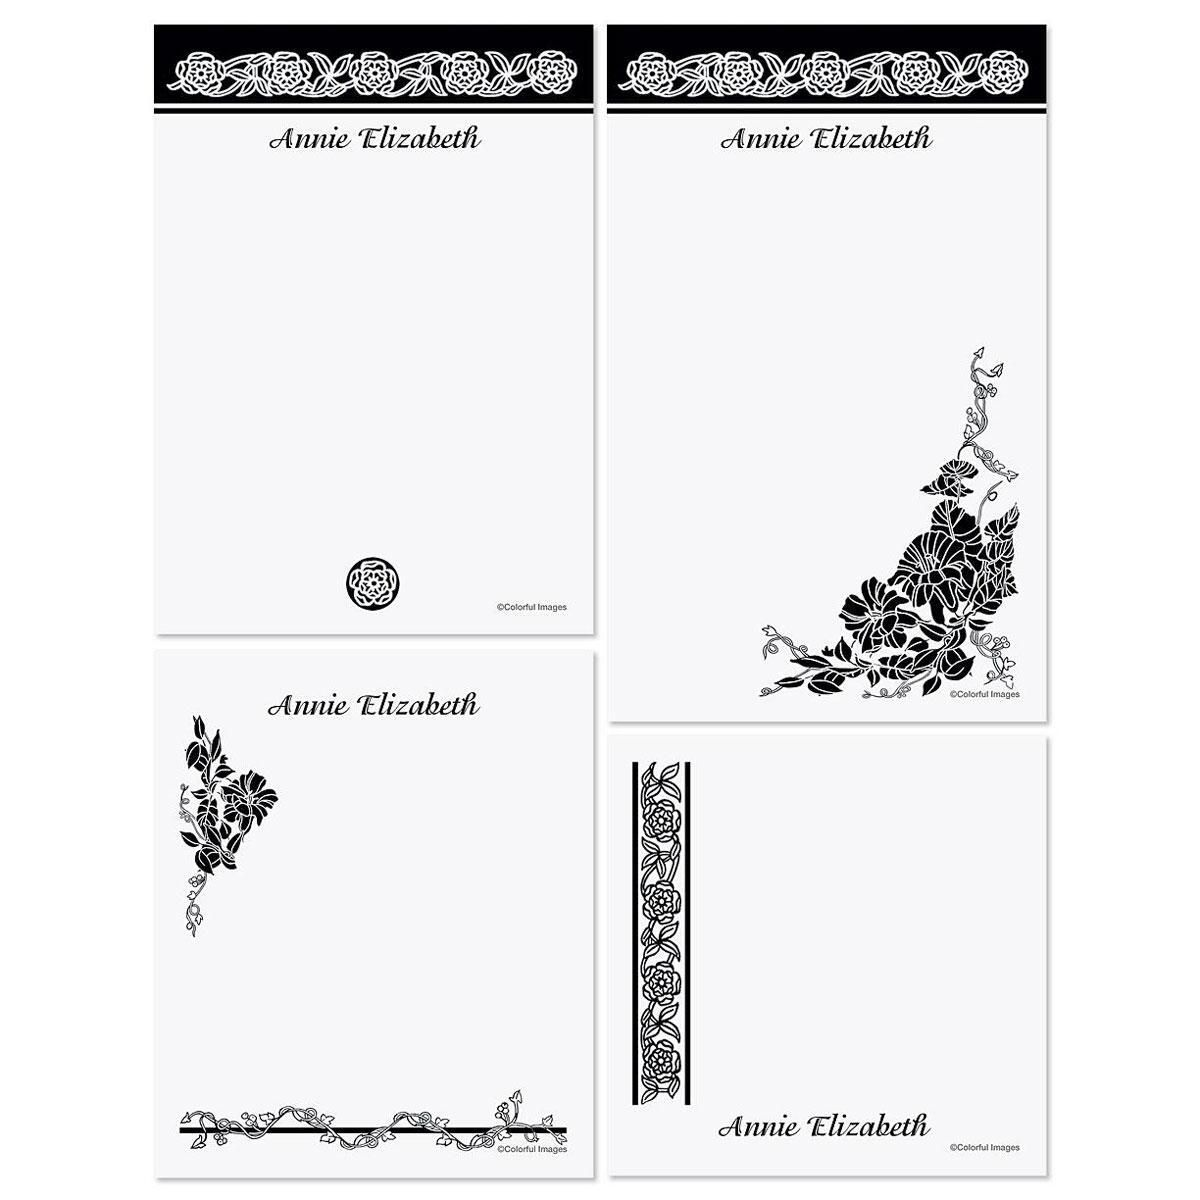 Black Amp White Memo Pad Sets Colorful Images